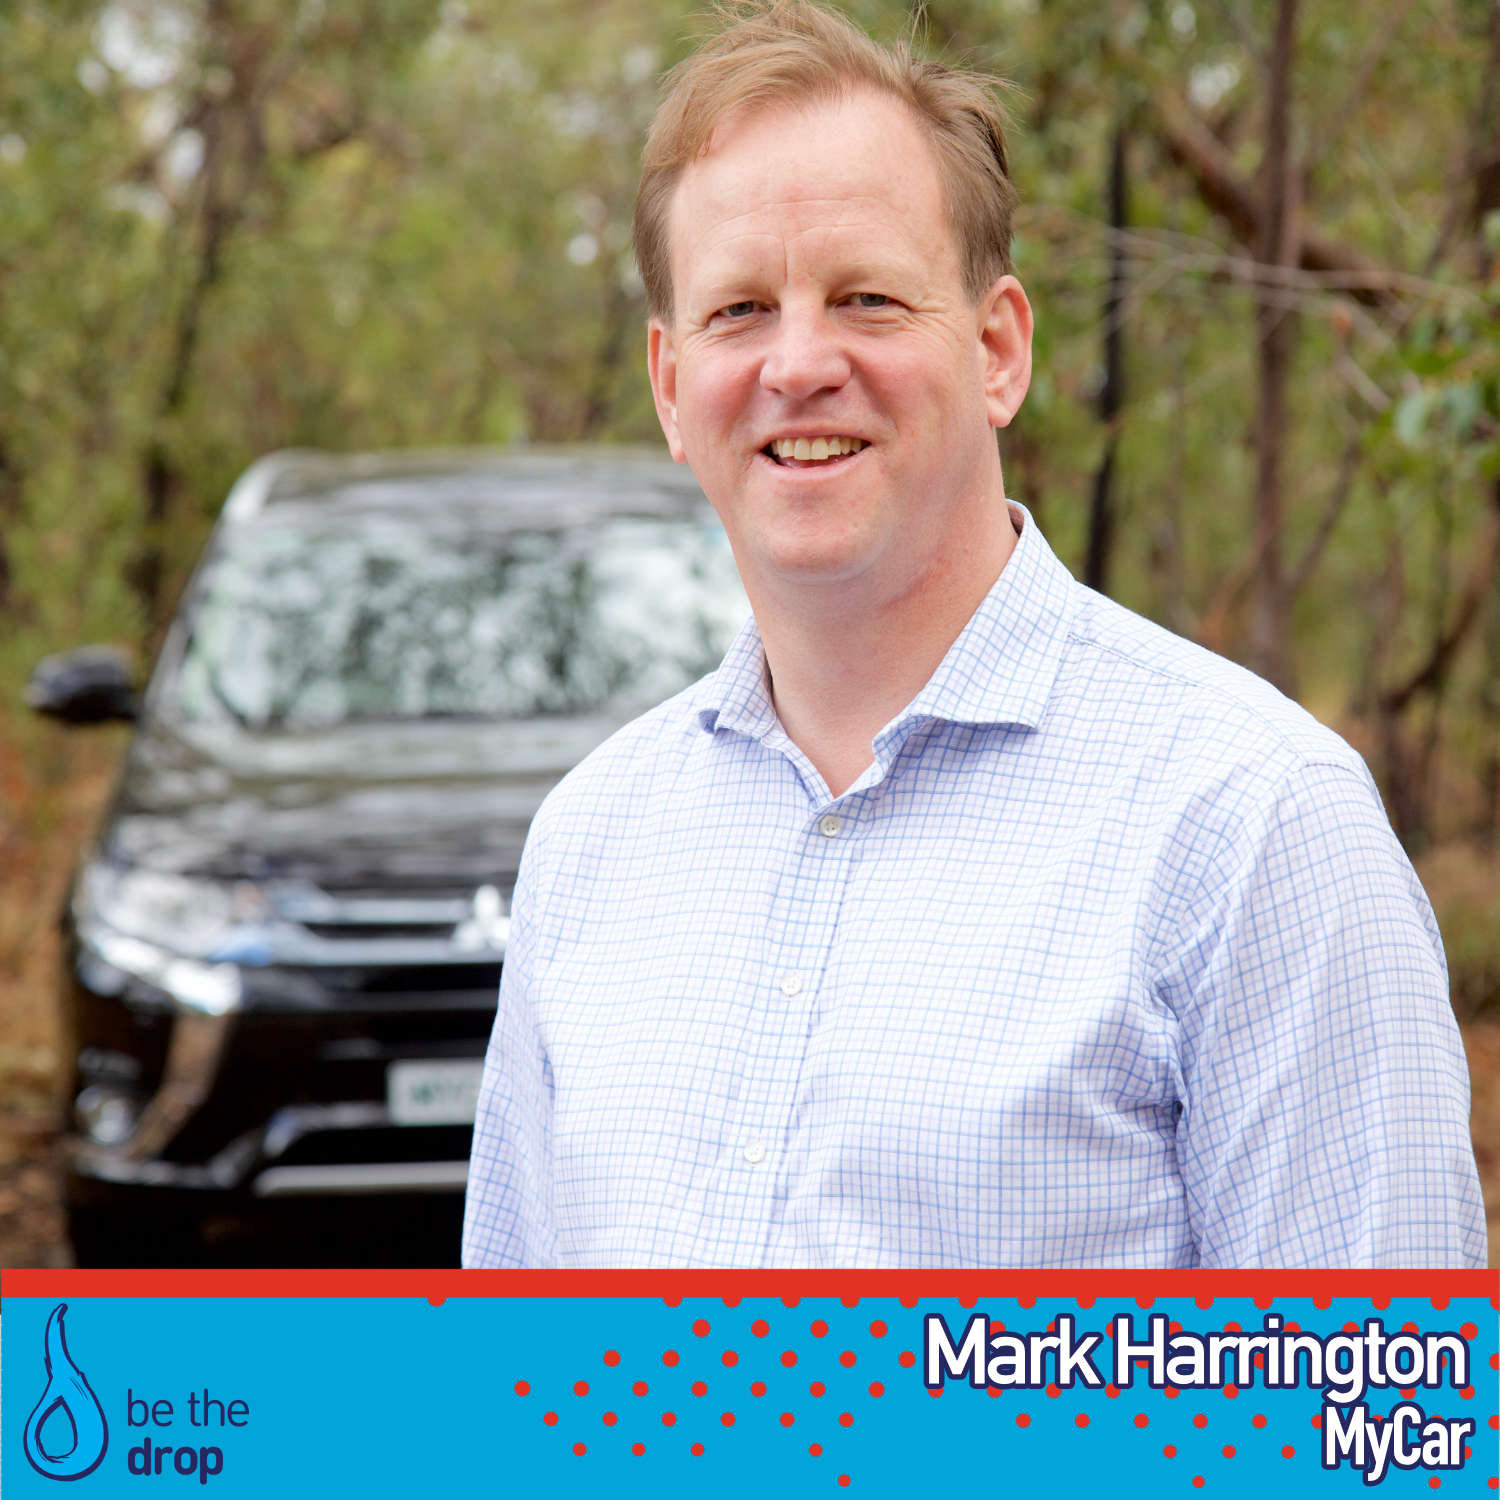 Mark Harrington from myCar, discusses electric cars